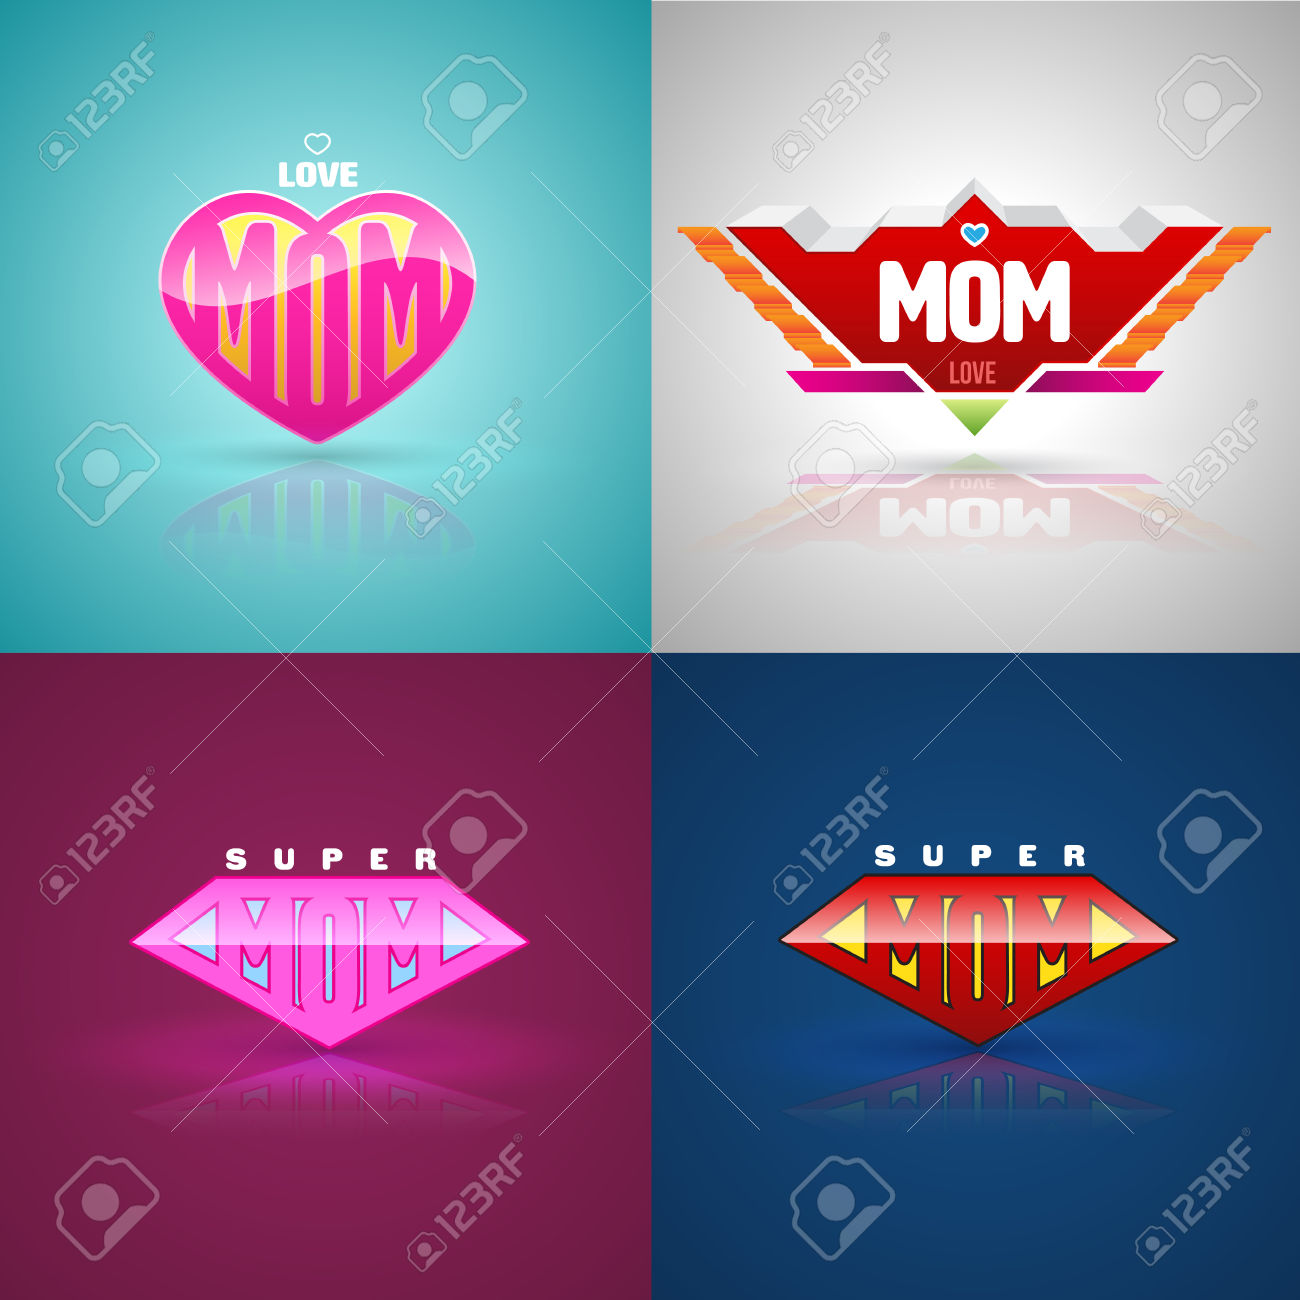 128,691 Mommy Stock Vector Illustration And Royalty Free Mommy Clipart.